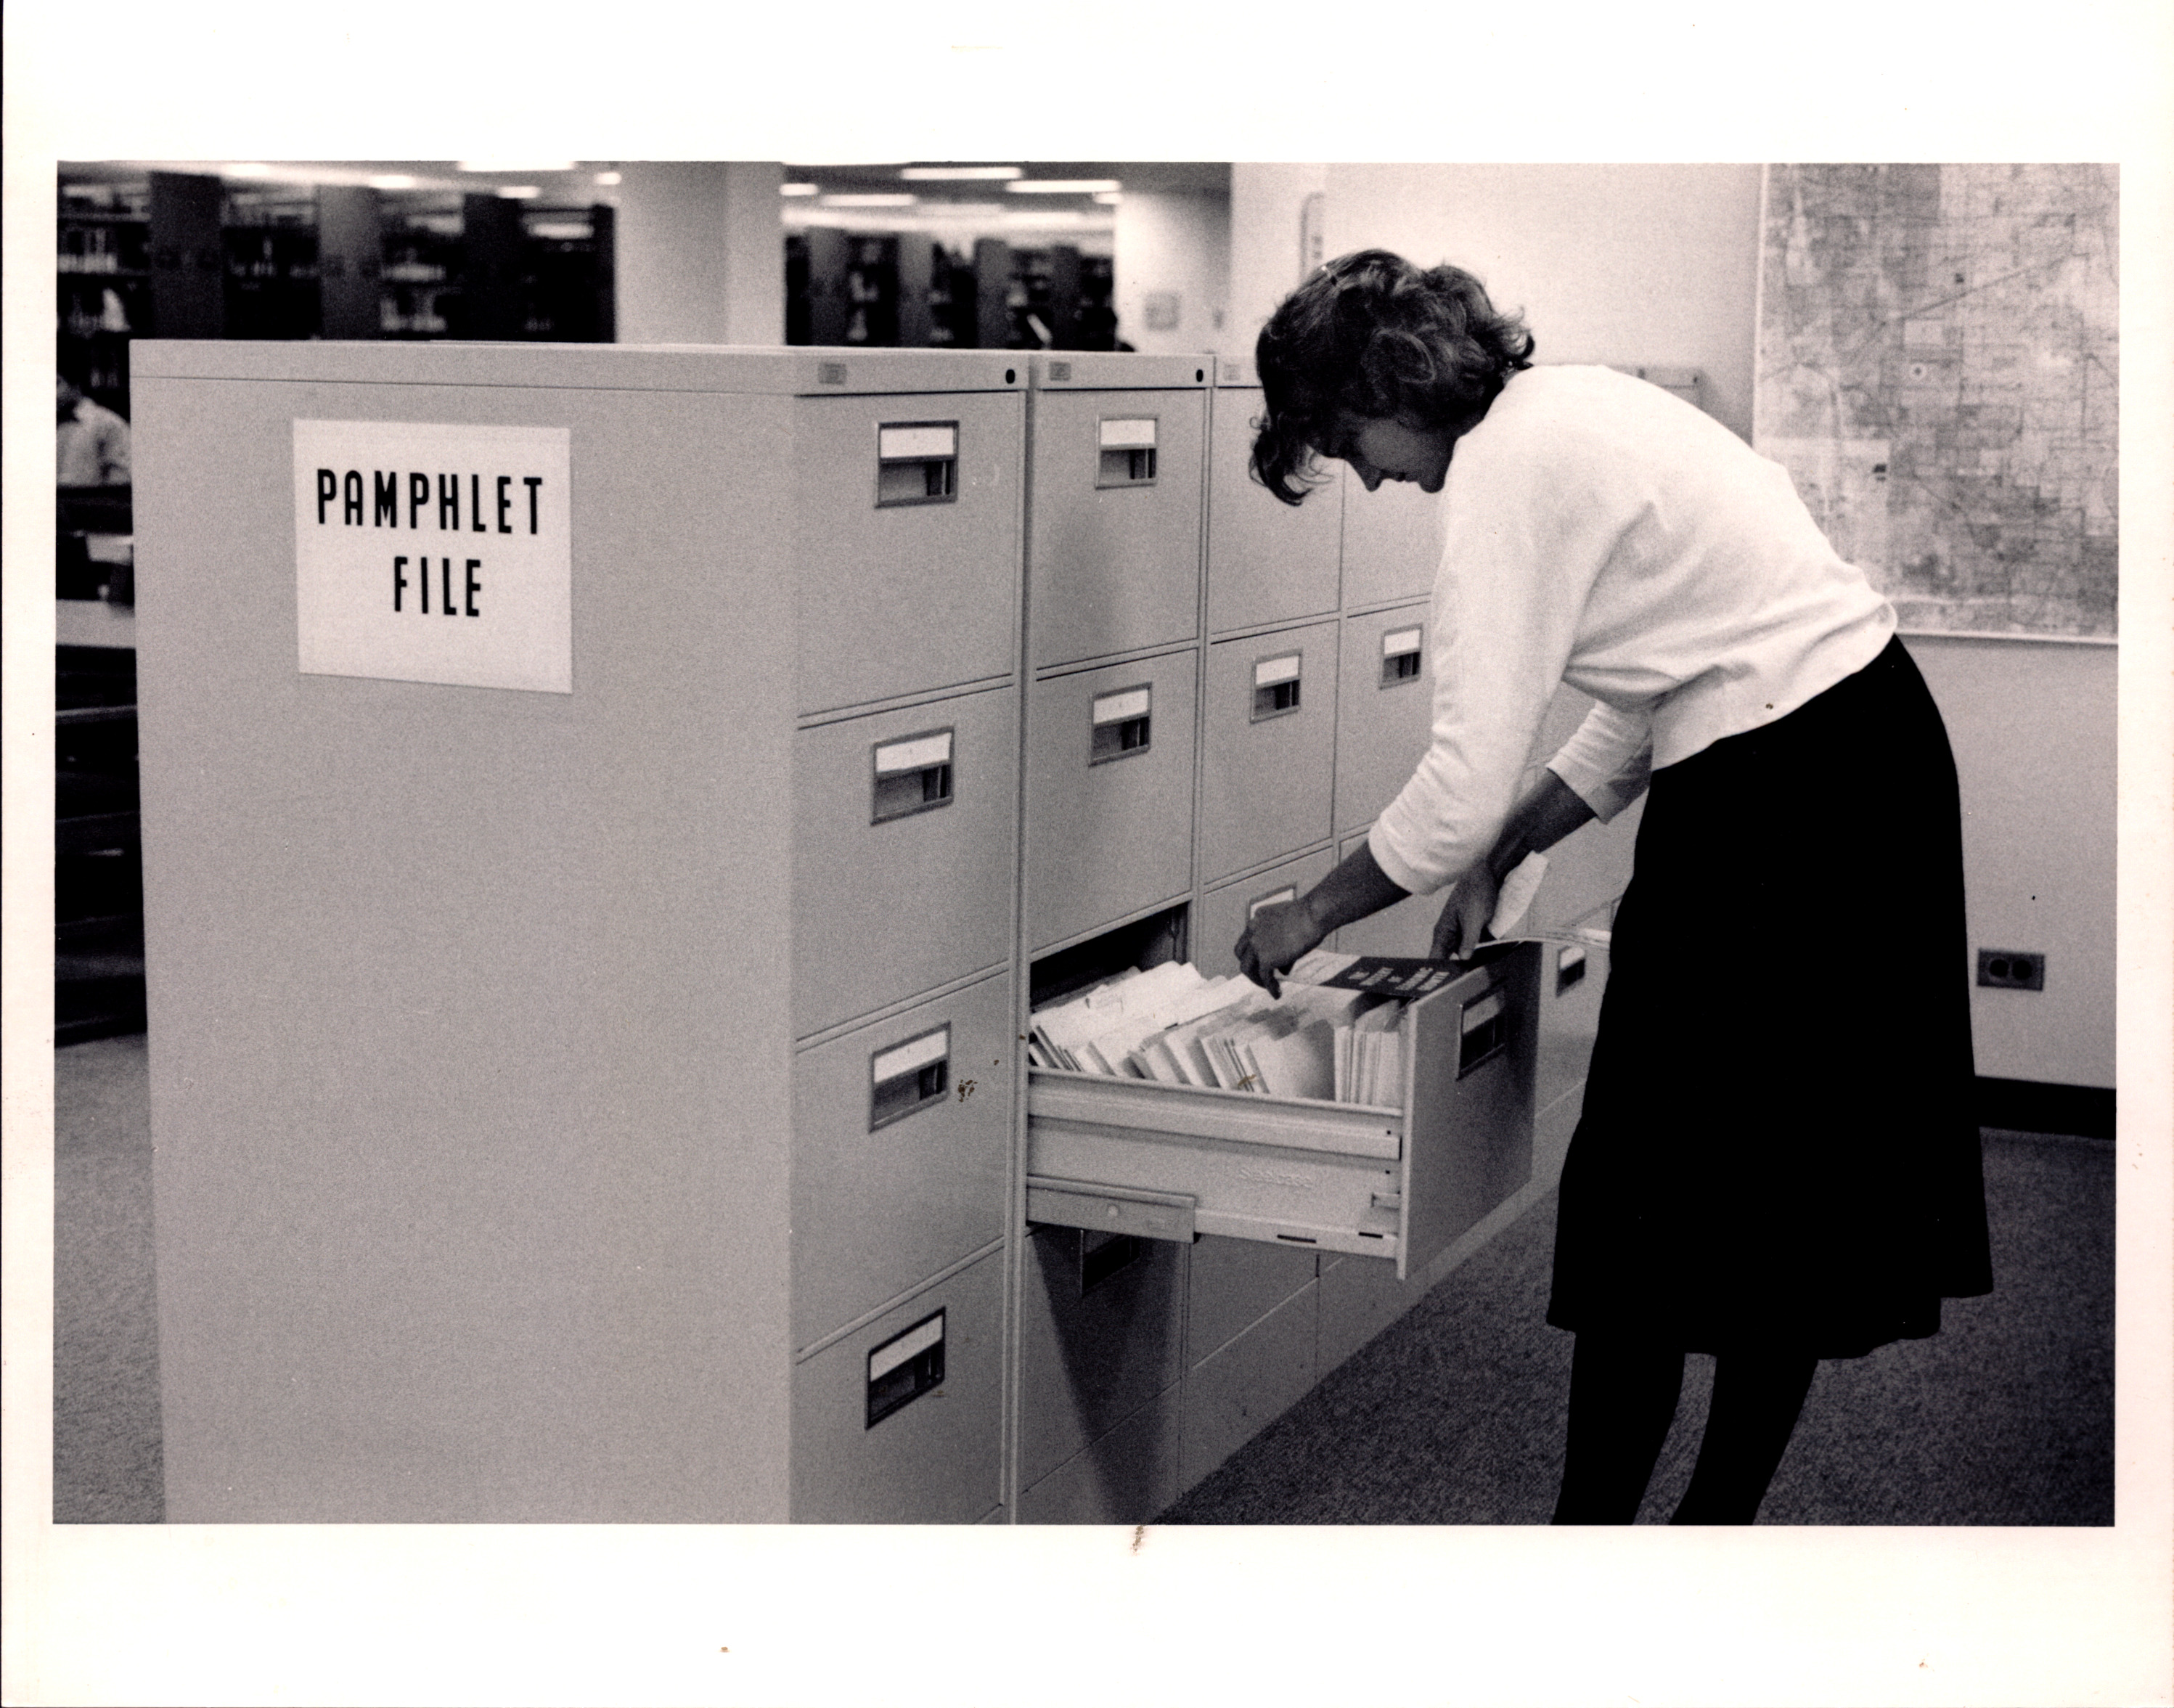 Female student using pamphlet file.